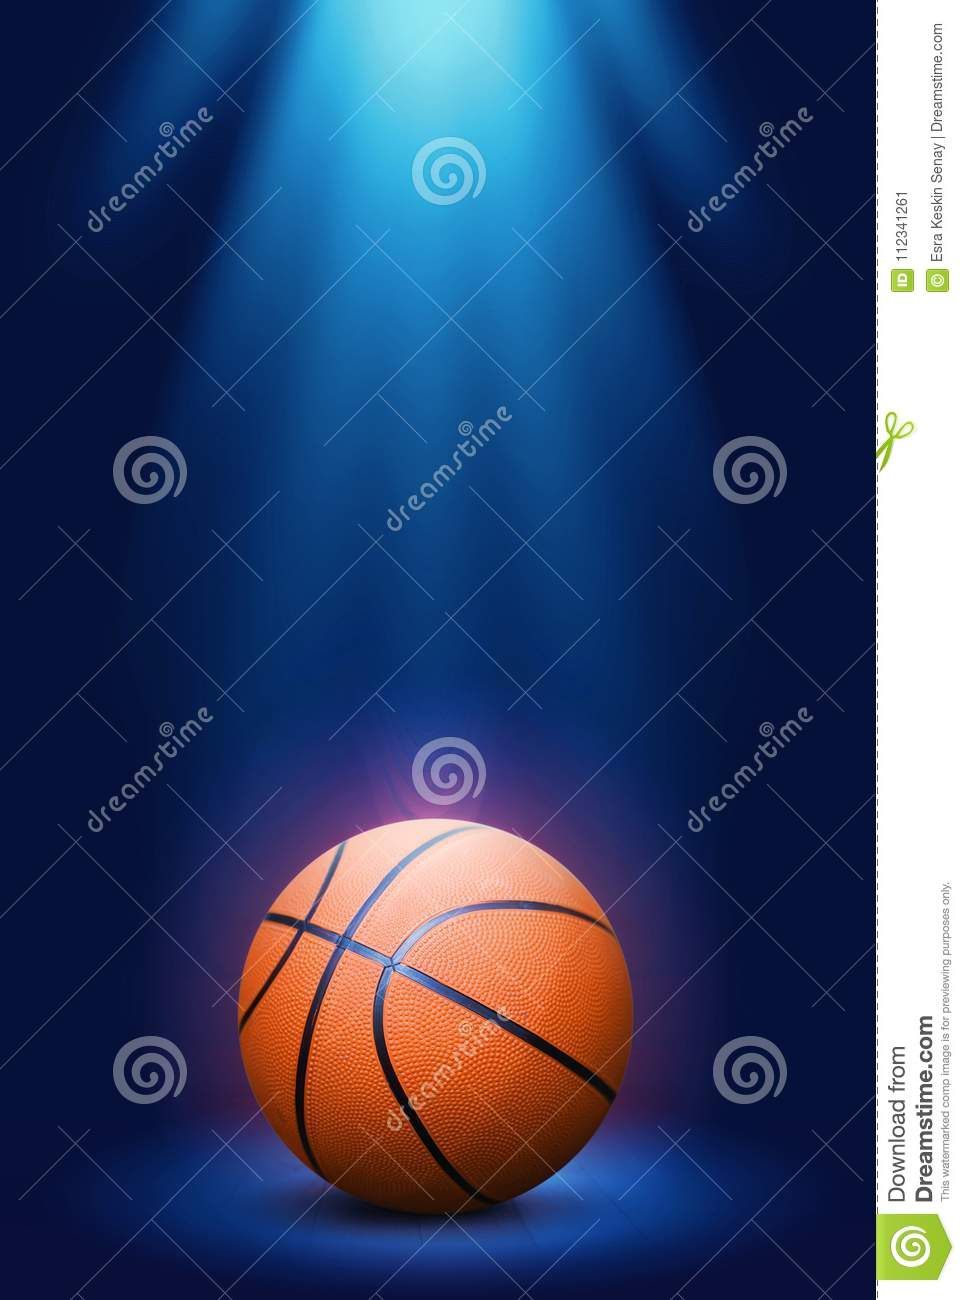 Basketball on the blue background.